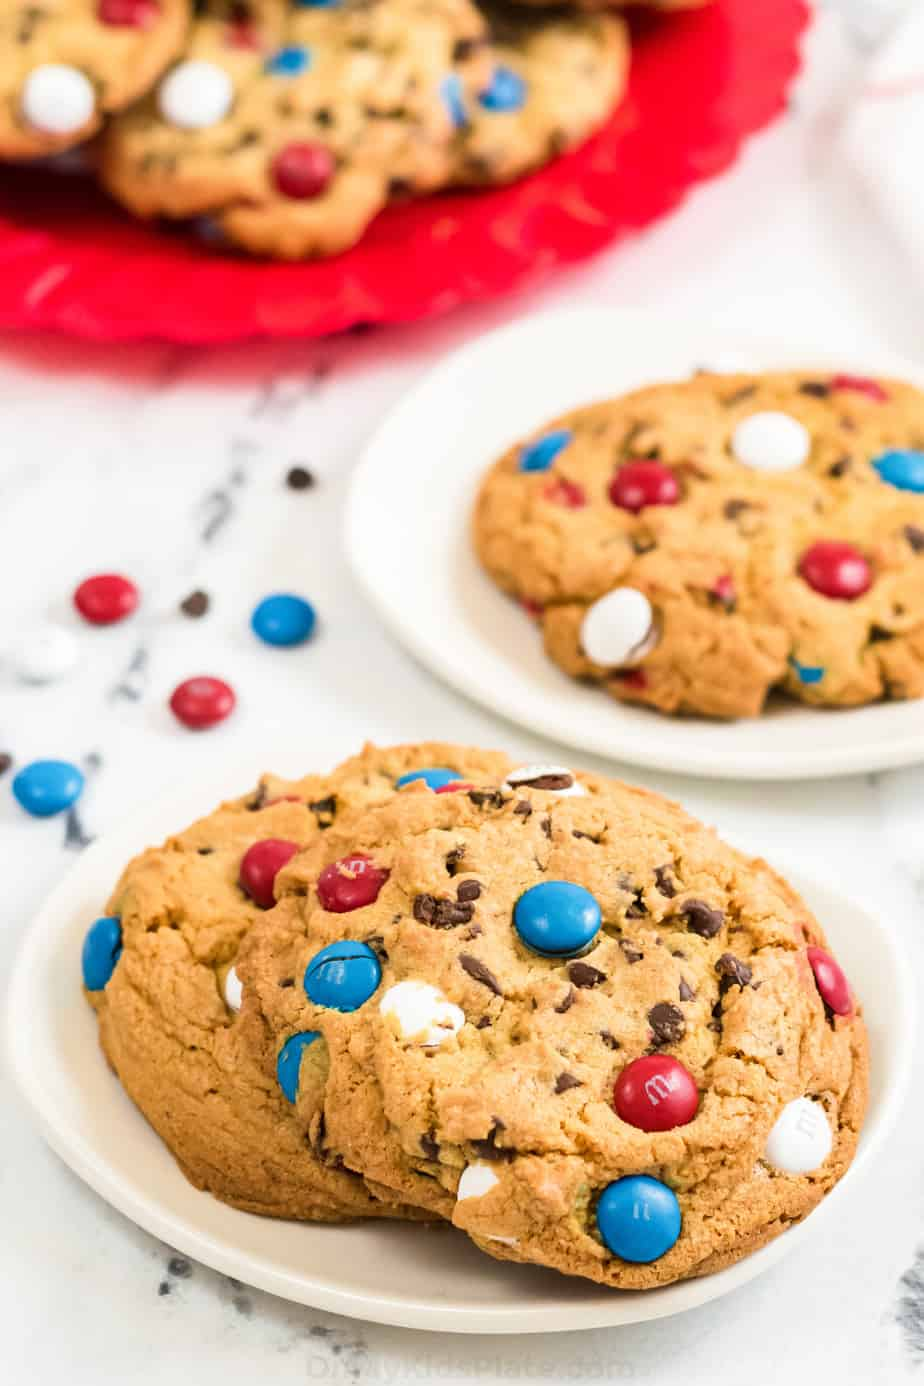 Cookies with red white and blue M&Ms on two plates with a platter of cookies behind